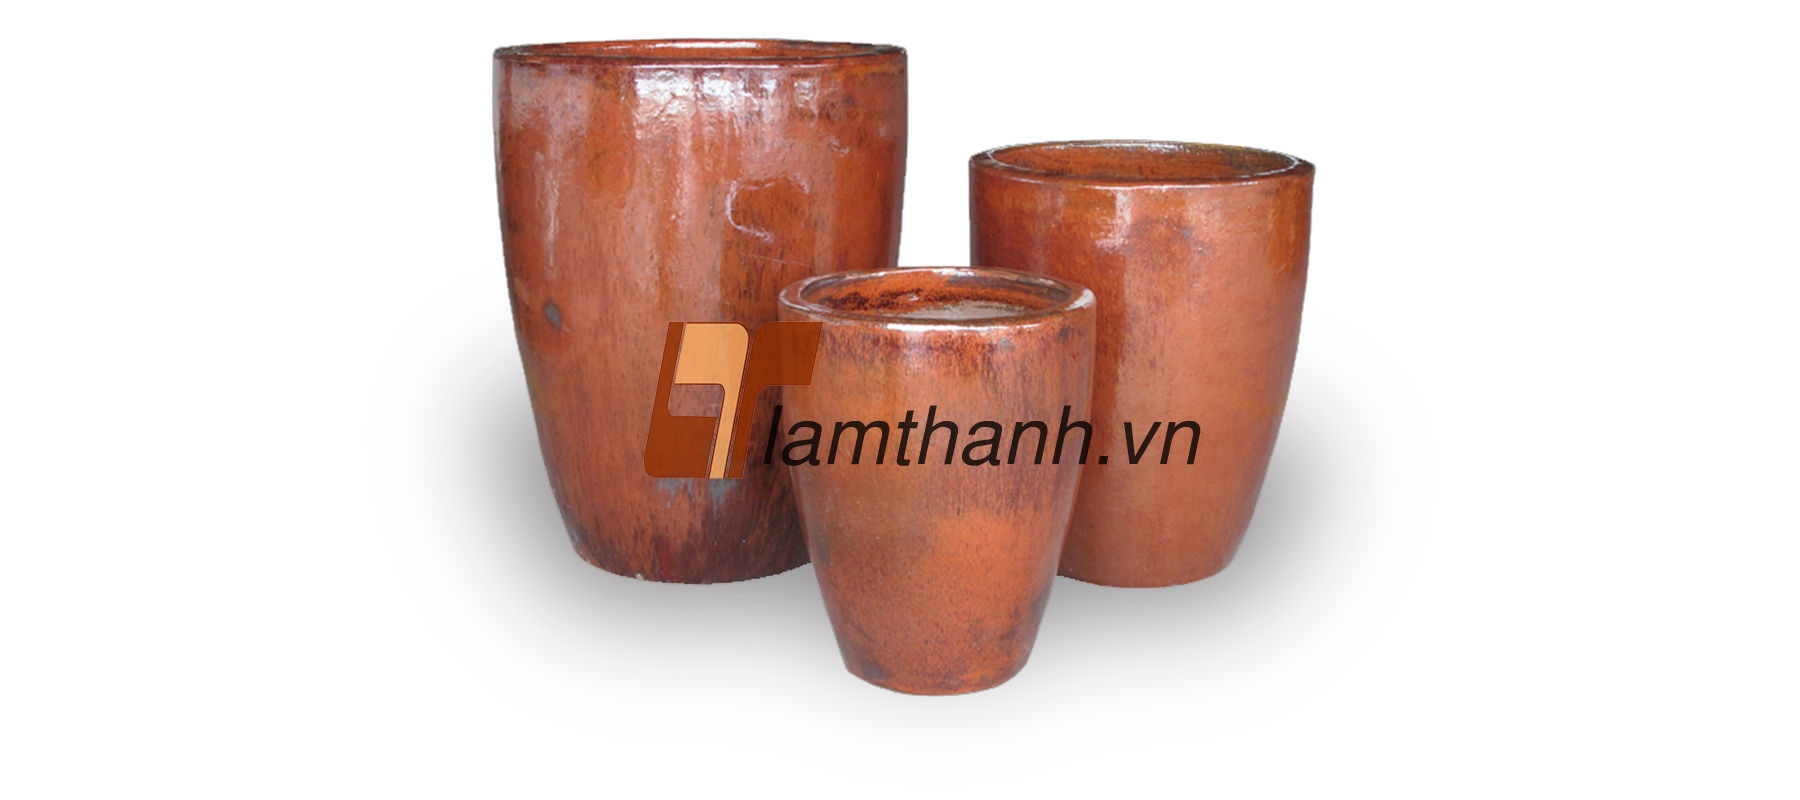 vietnam terracotta, outdoor glazed06